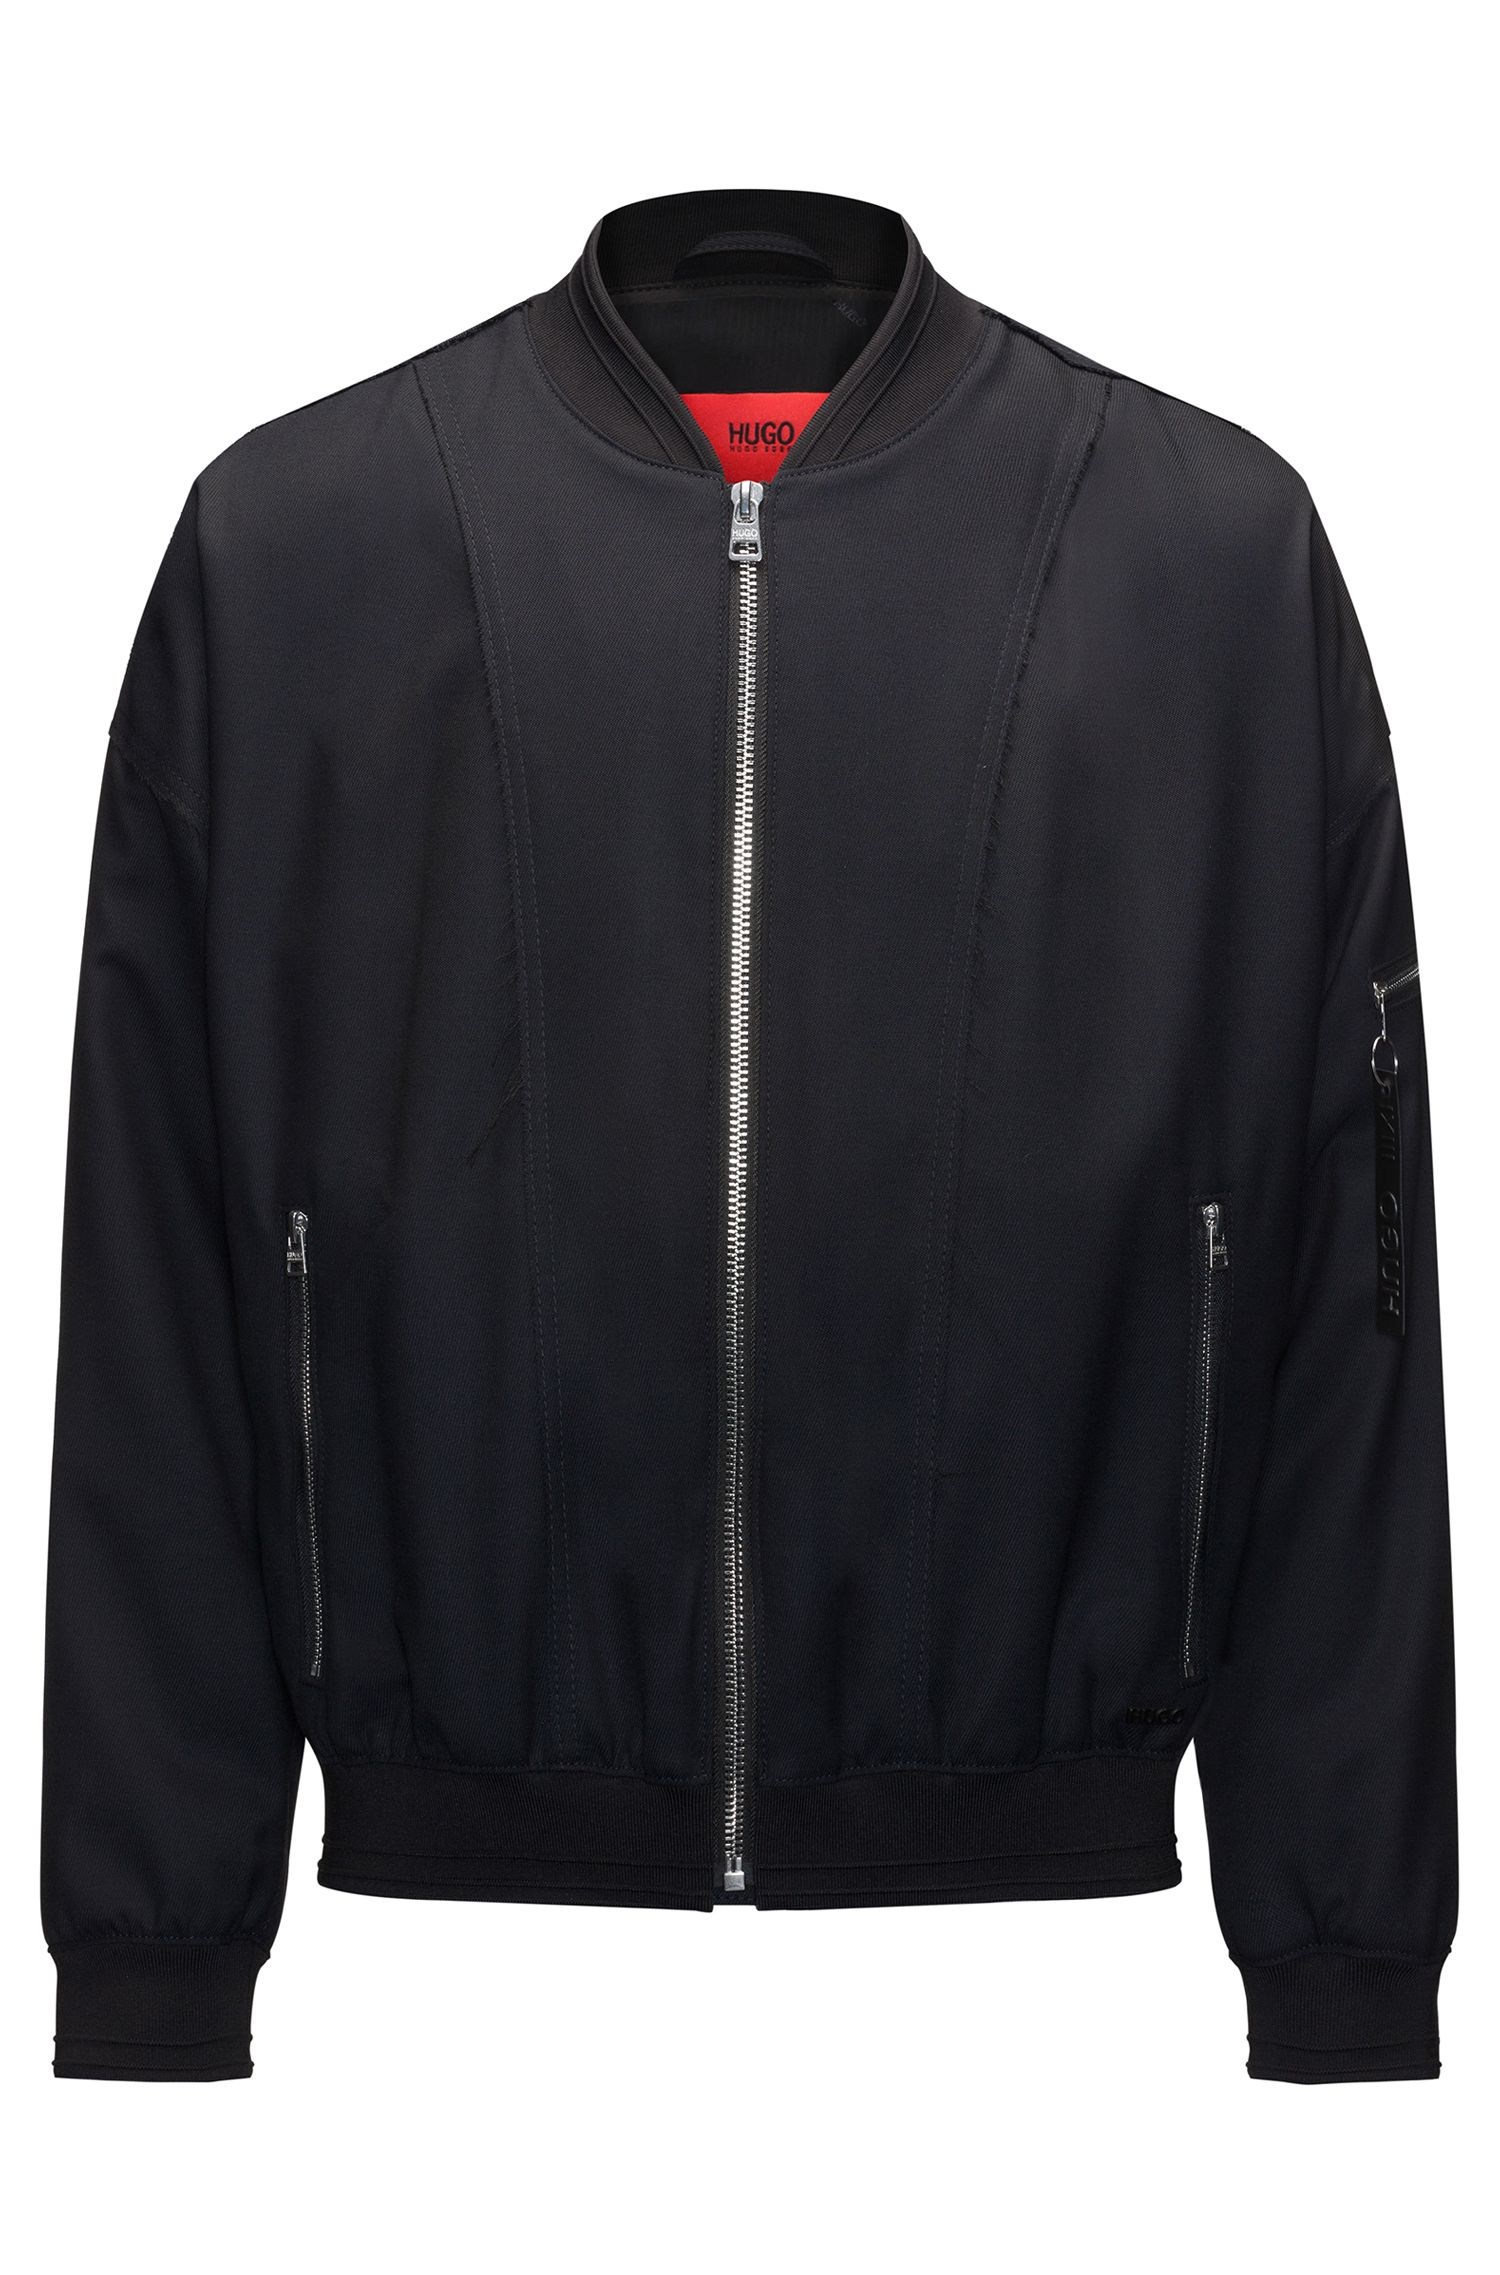 Relaxed-fit bomber jacket in a wool blend